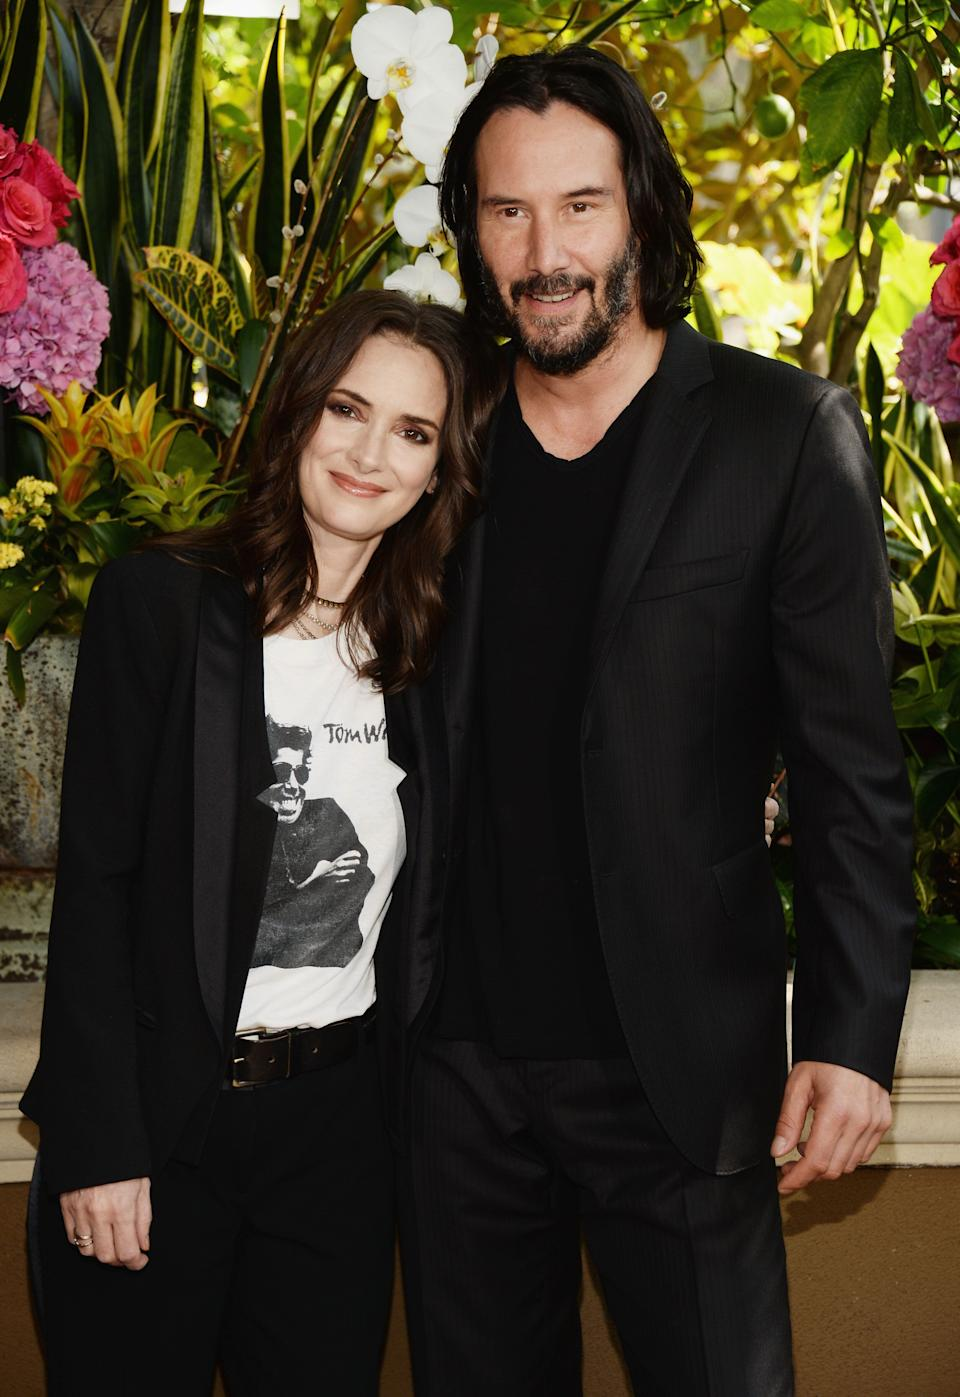 """Winona Ryder and Reeves attend a photo call for """"Destination Wedding"""" at the Four Seasons Hotel Los Angeles."""